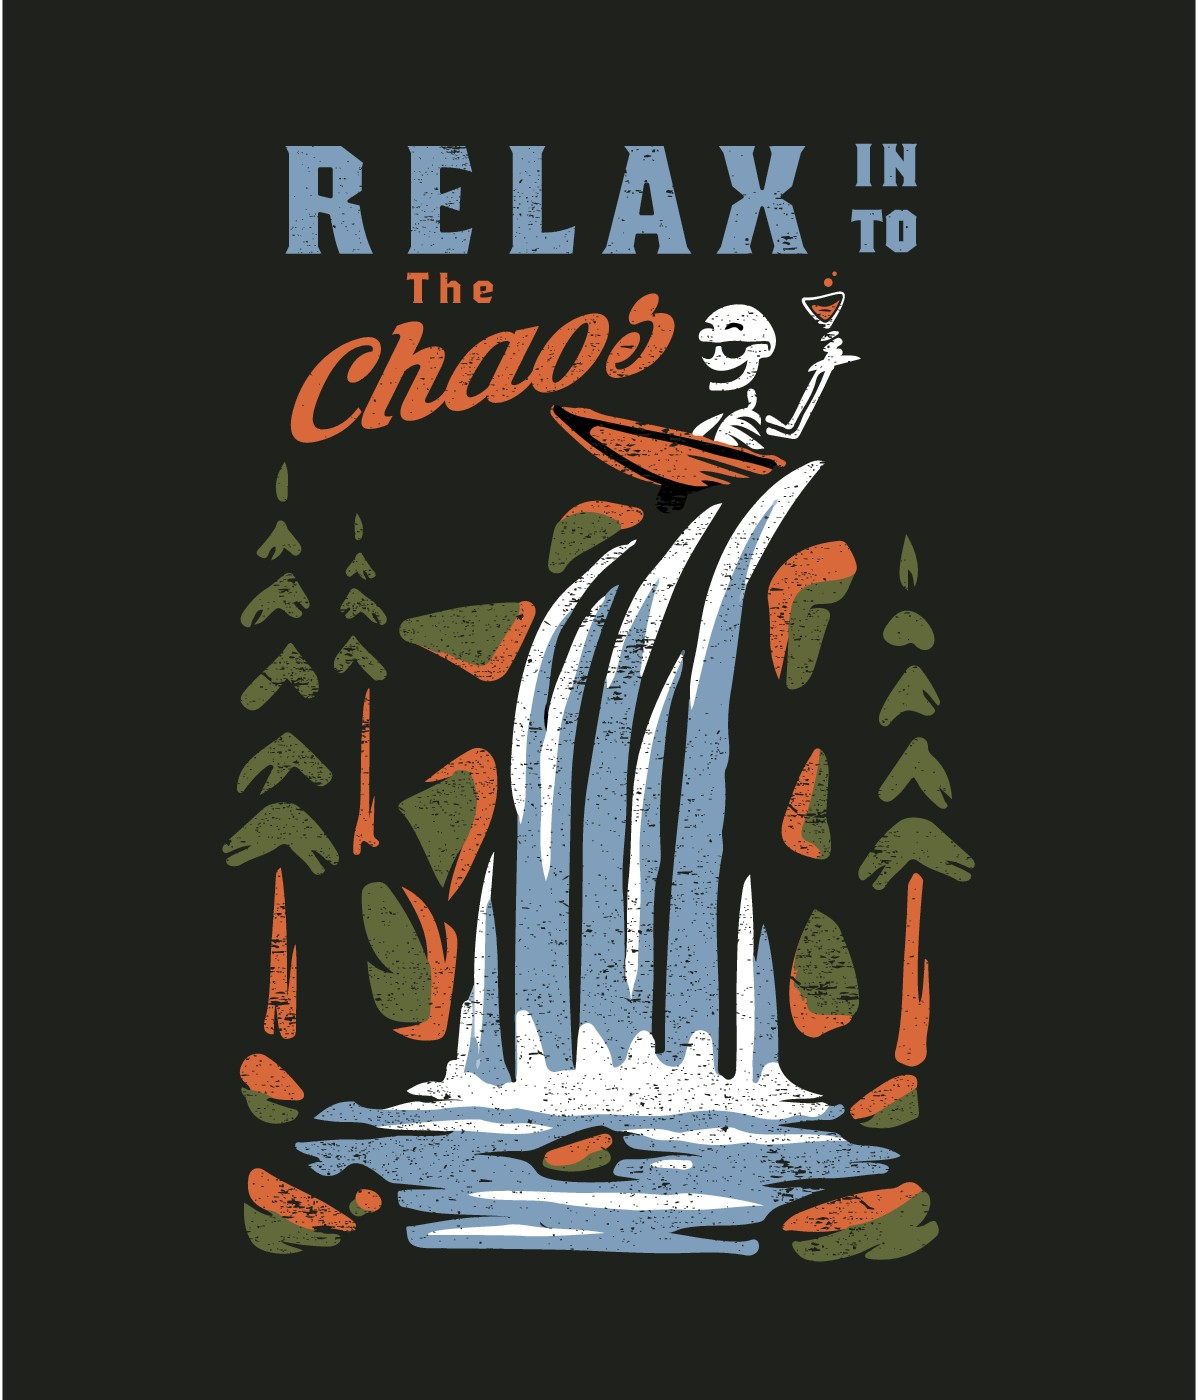 T Shirt Designs for RELAX INTO THE CHAOS